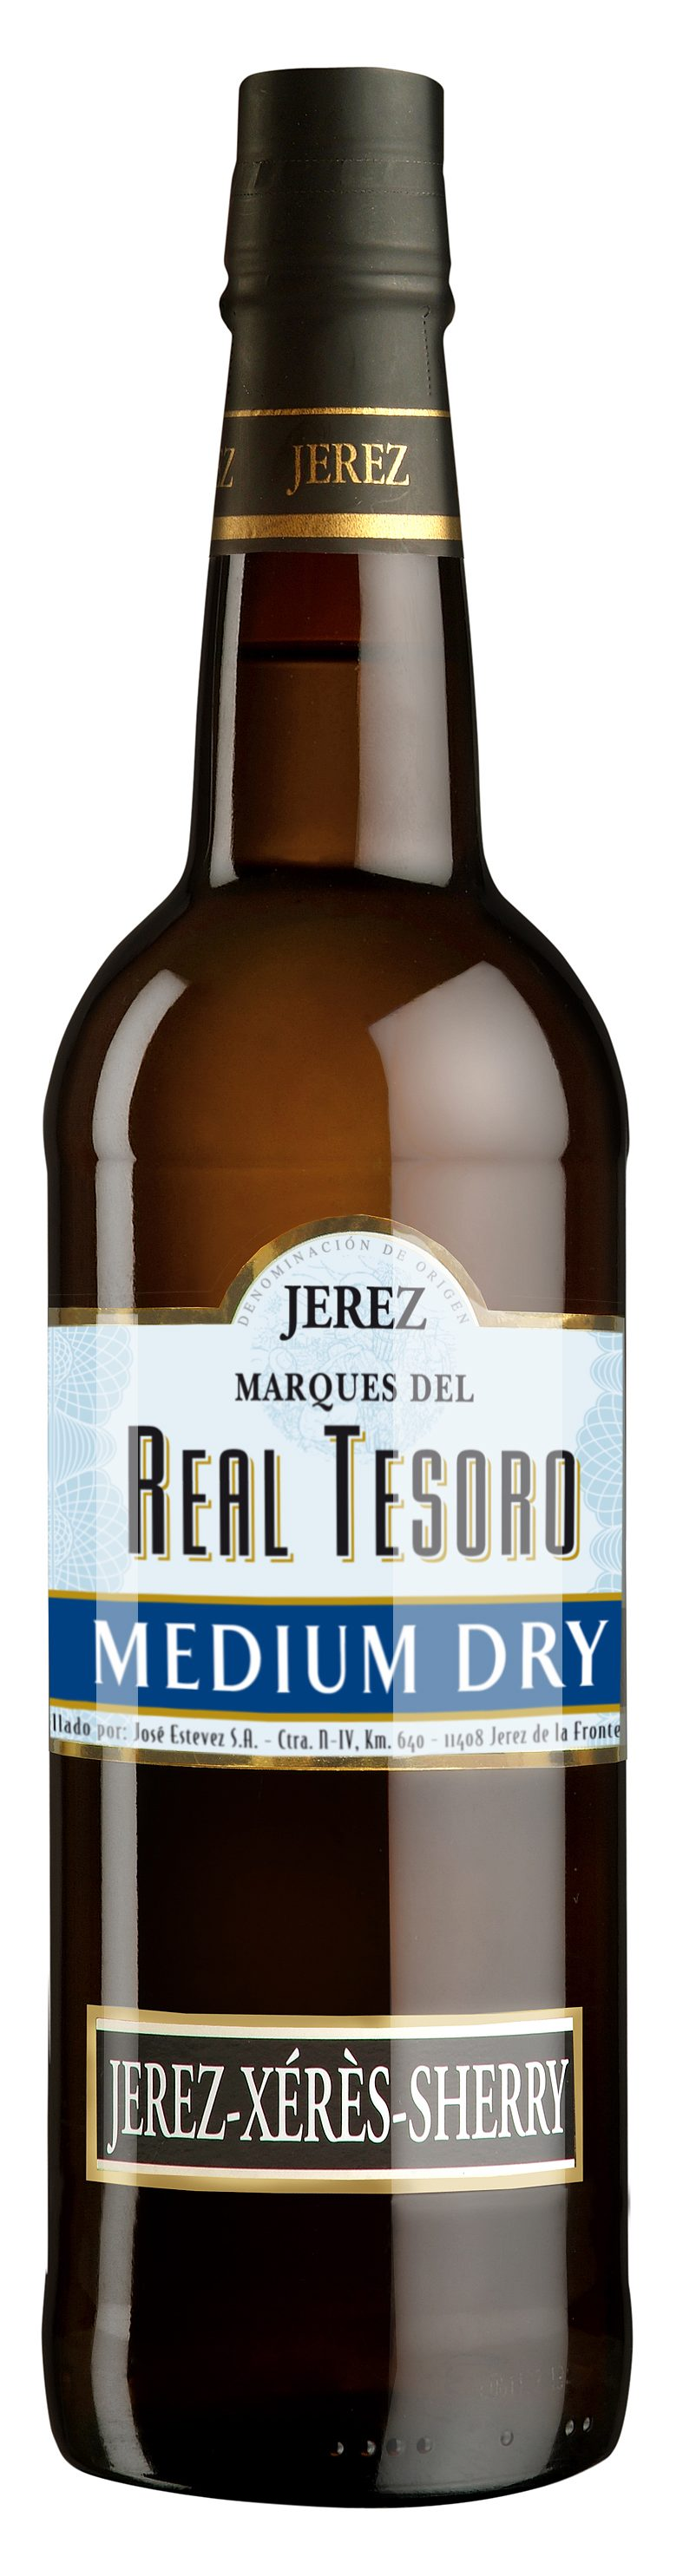 Valdespino Real Tesoro, Medium Dry